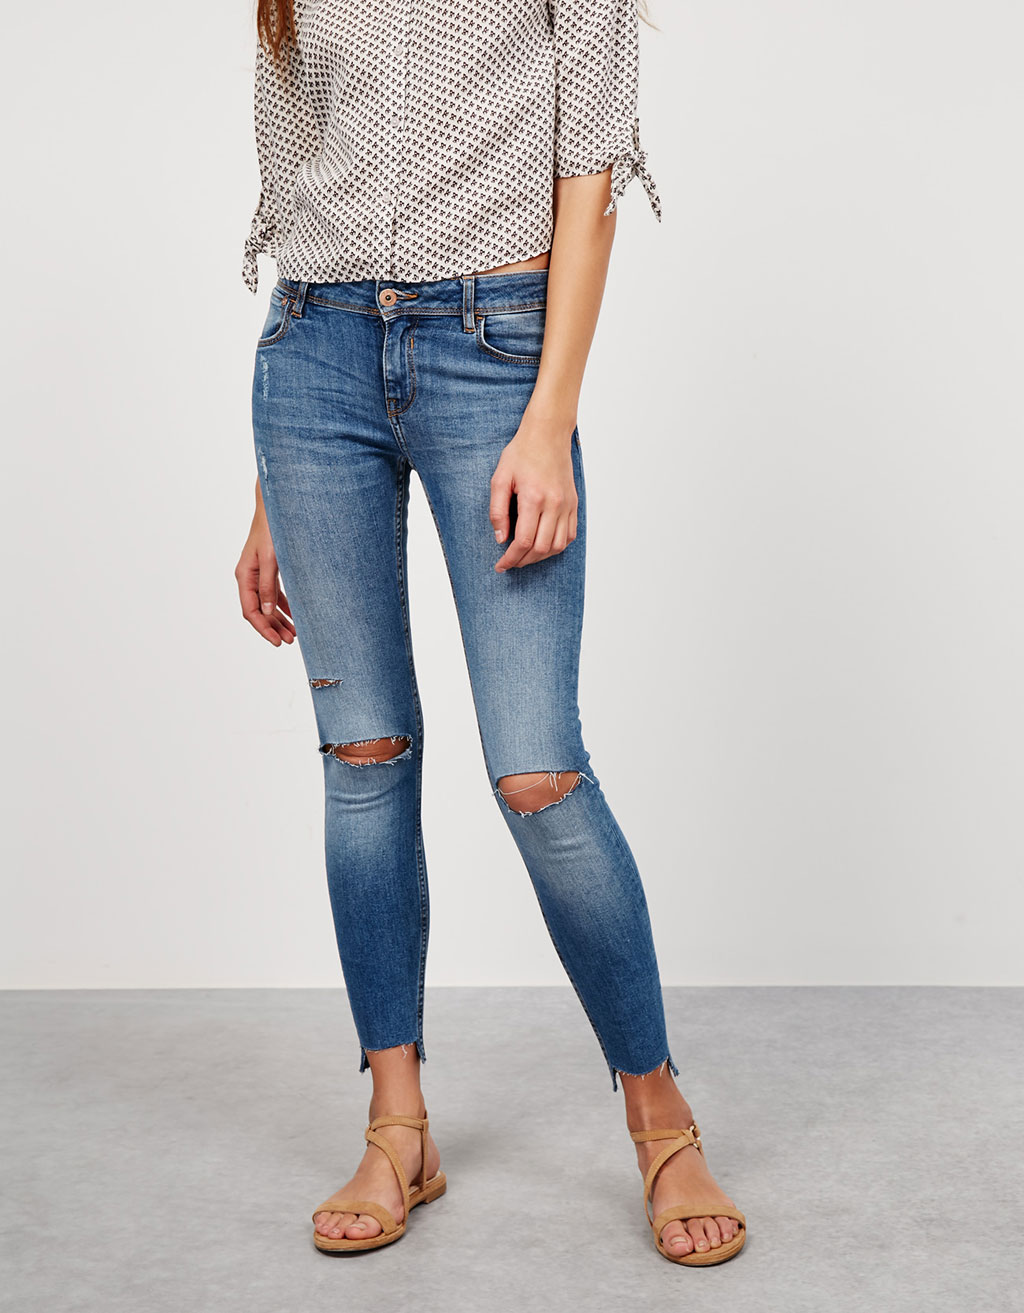 Jeans with asymmetric hem and cut knees